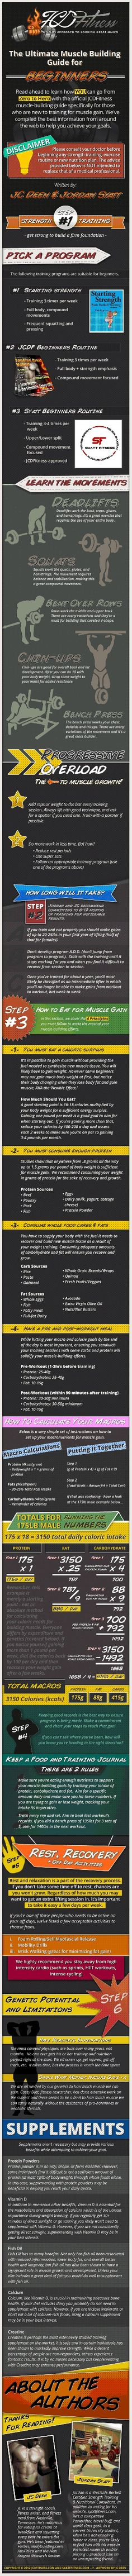 75 Best Sexier Leaner Me Images On Pinterest Beachwear Fashion Corporation Br120af Single Pole Arc Fault Circuit Breaker 20amp The Ultimate Muscle Building Guide For Beginners Infographic